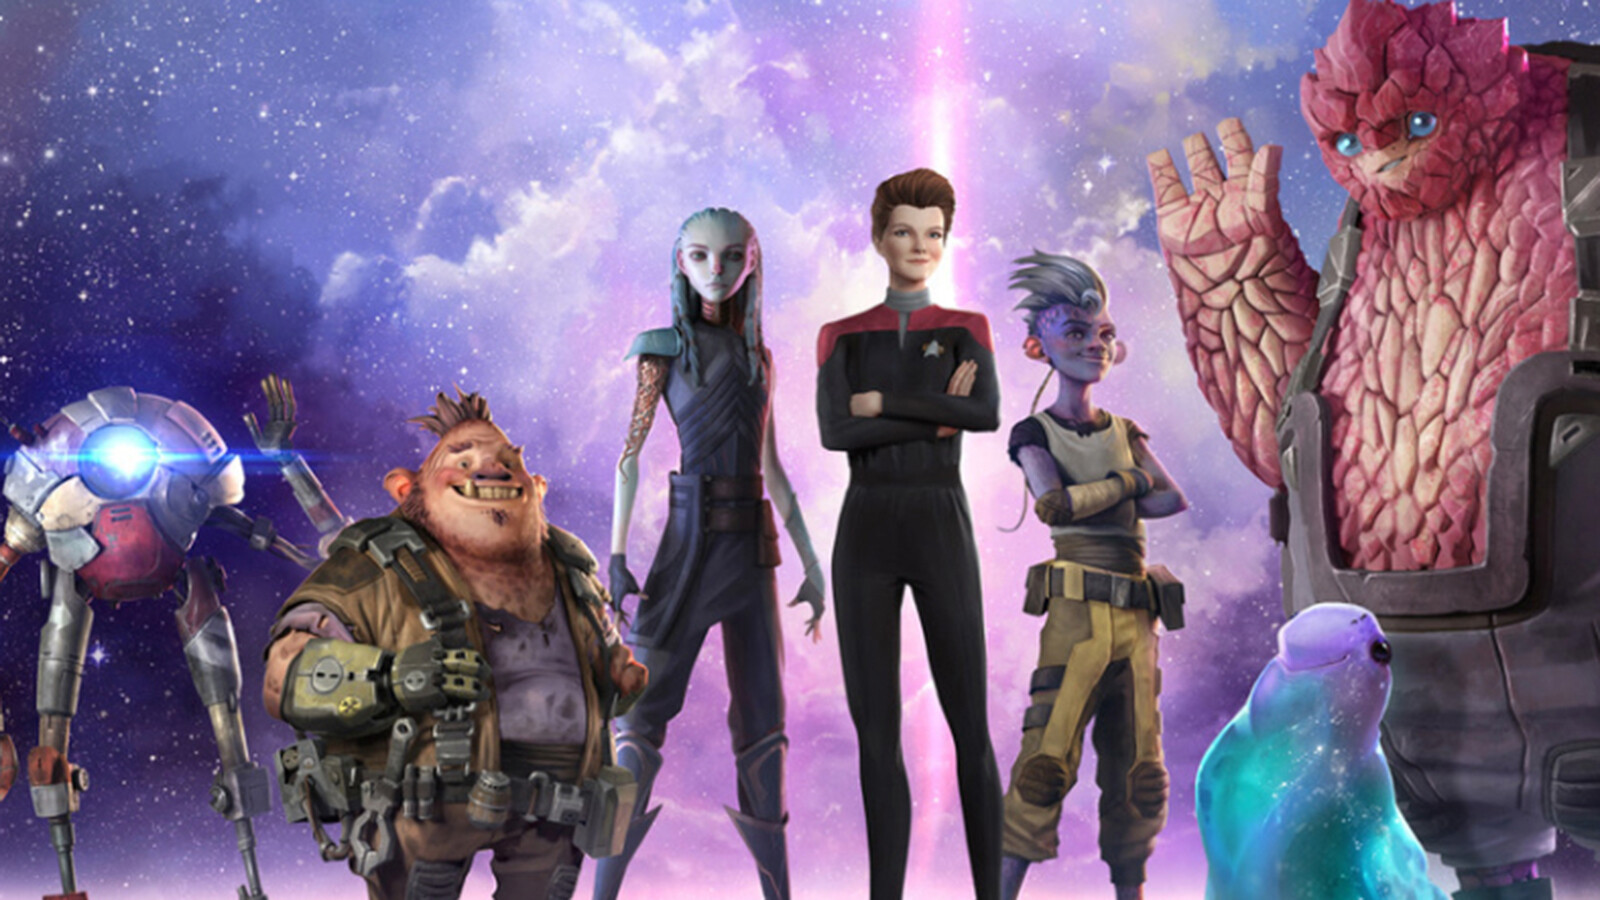 'Star Trek: Prodigy' takes off in too-familiar animated directions